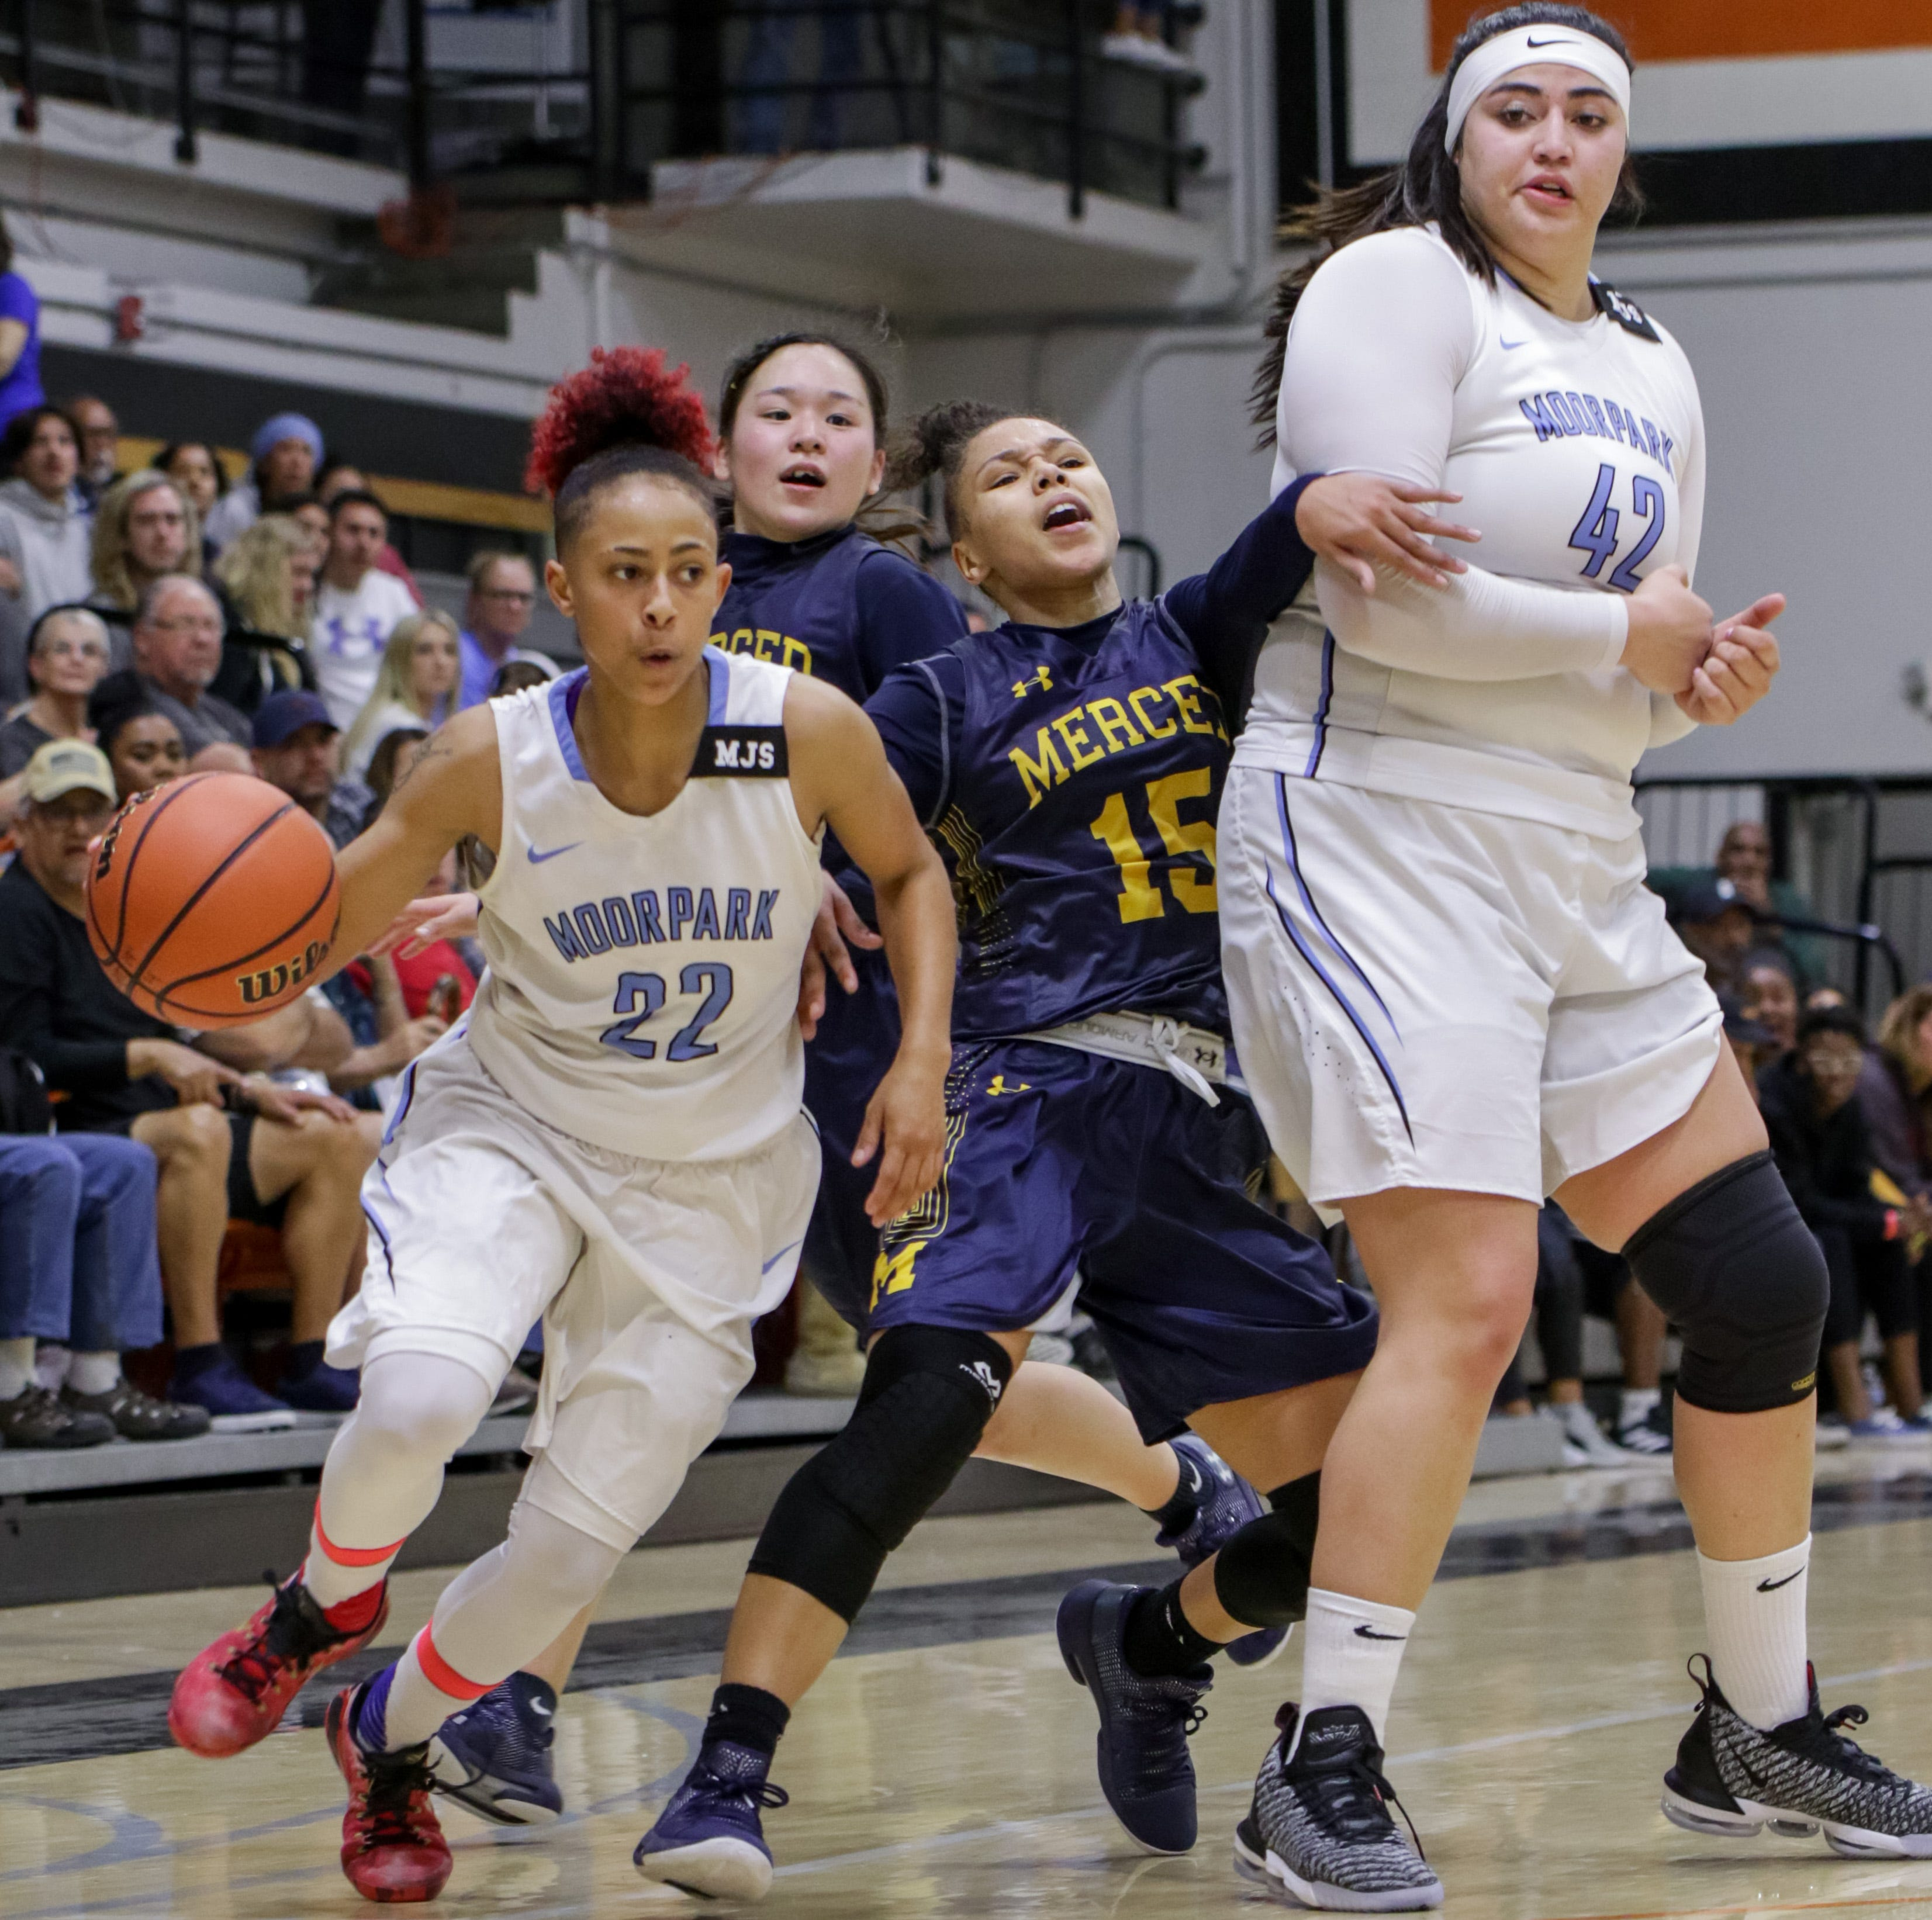 Moorpark College women advances state basketball final for first time in program history